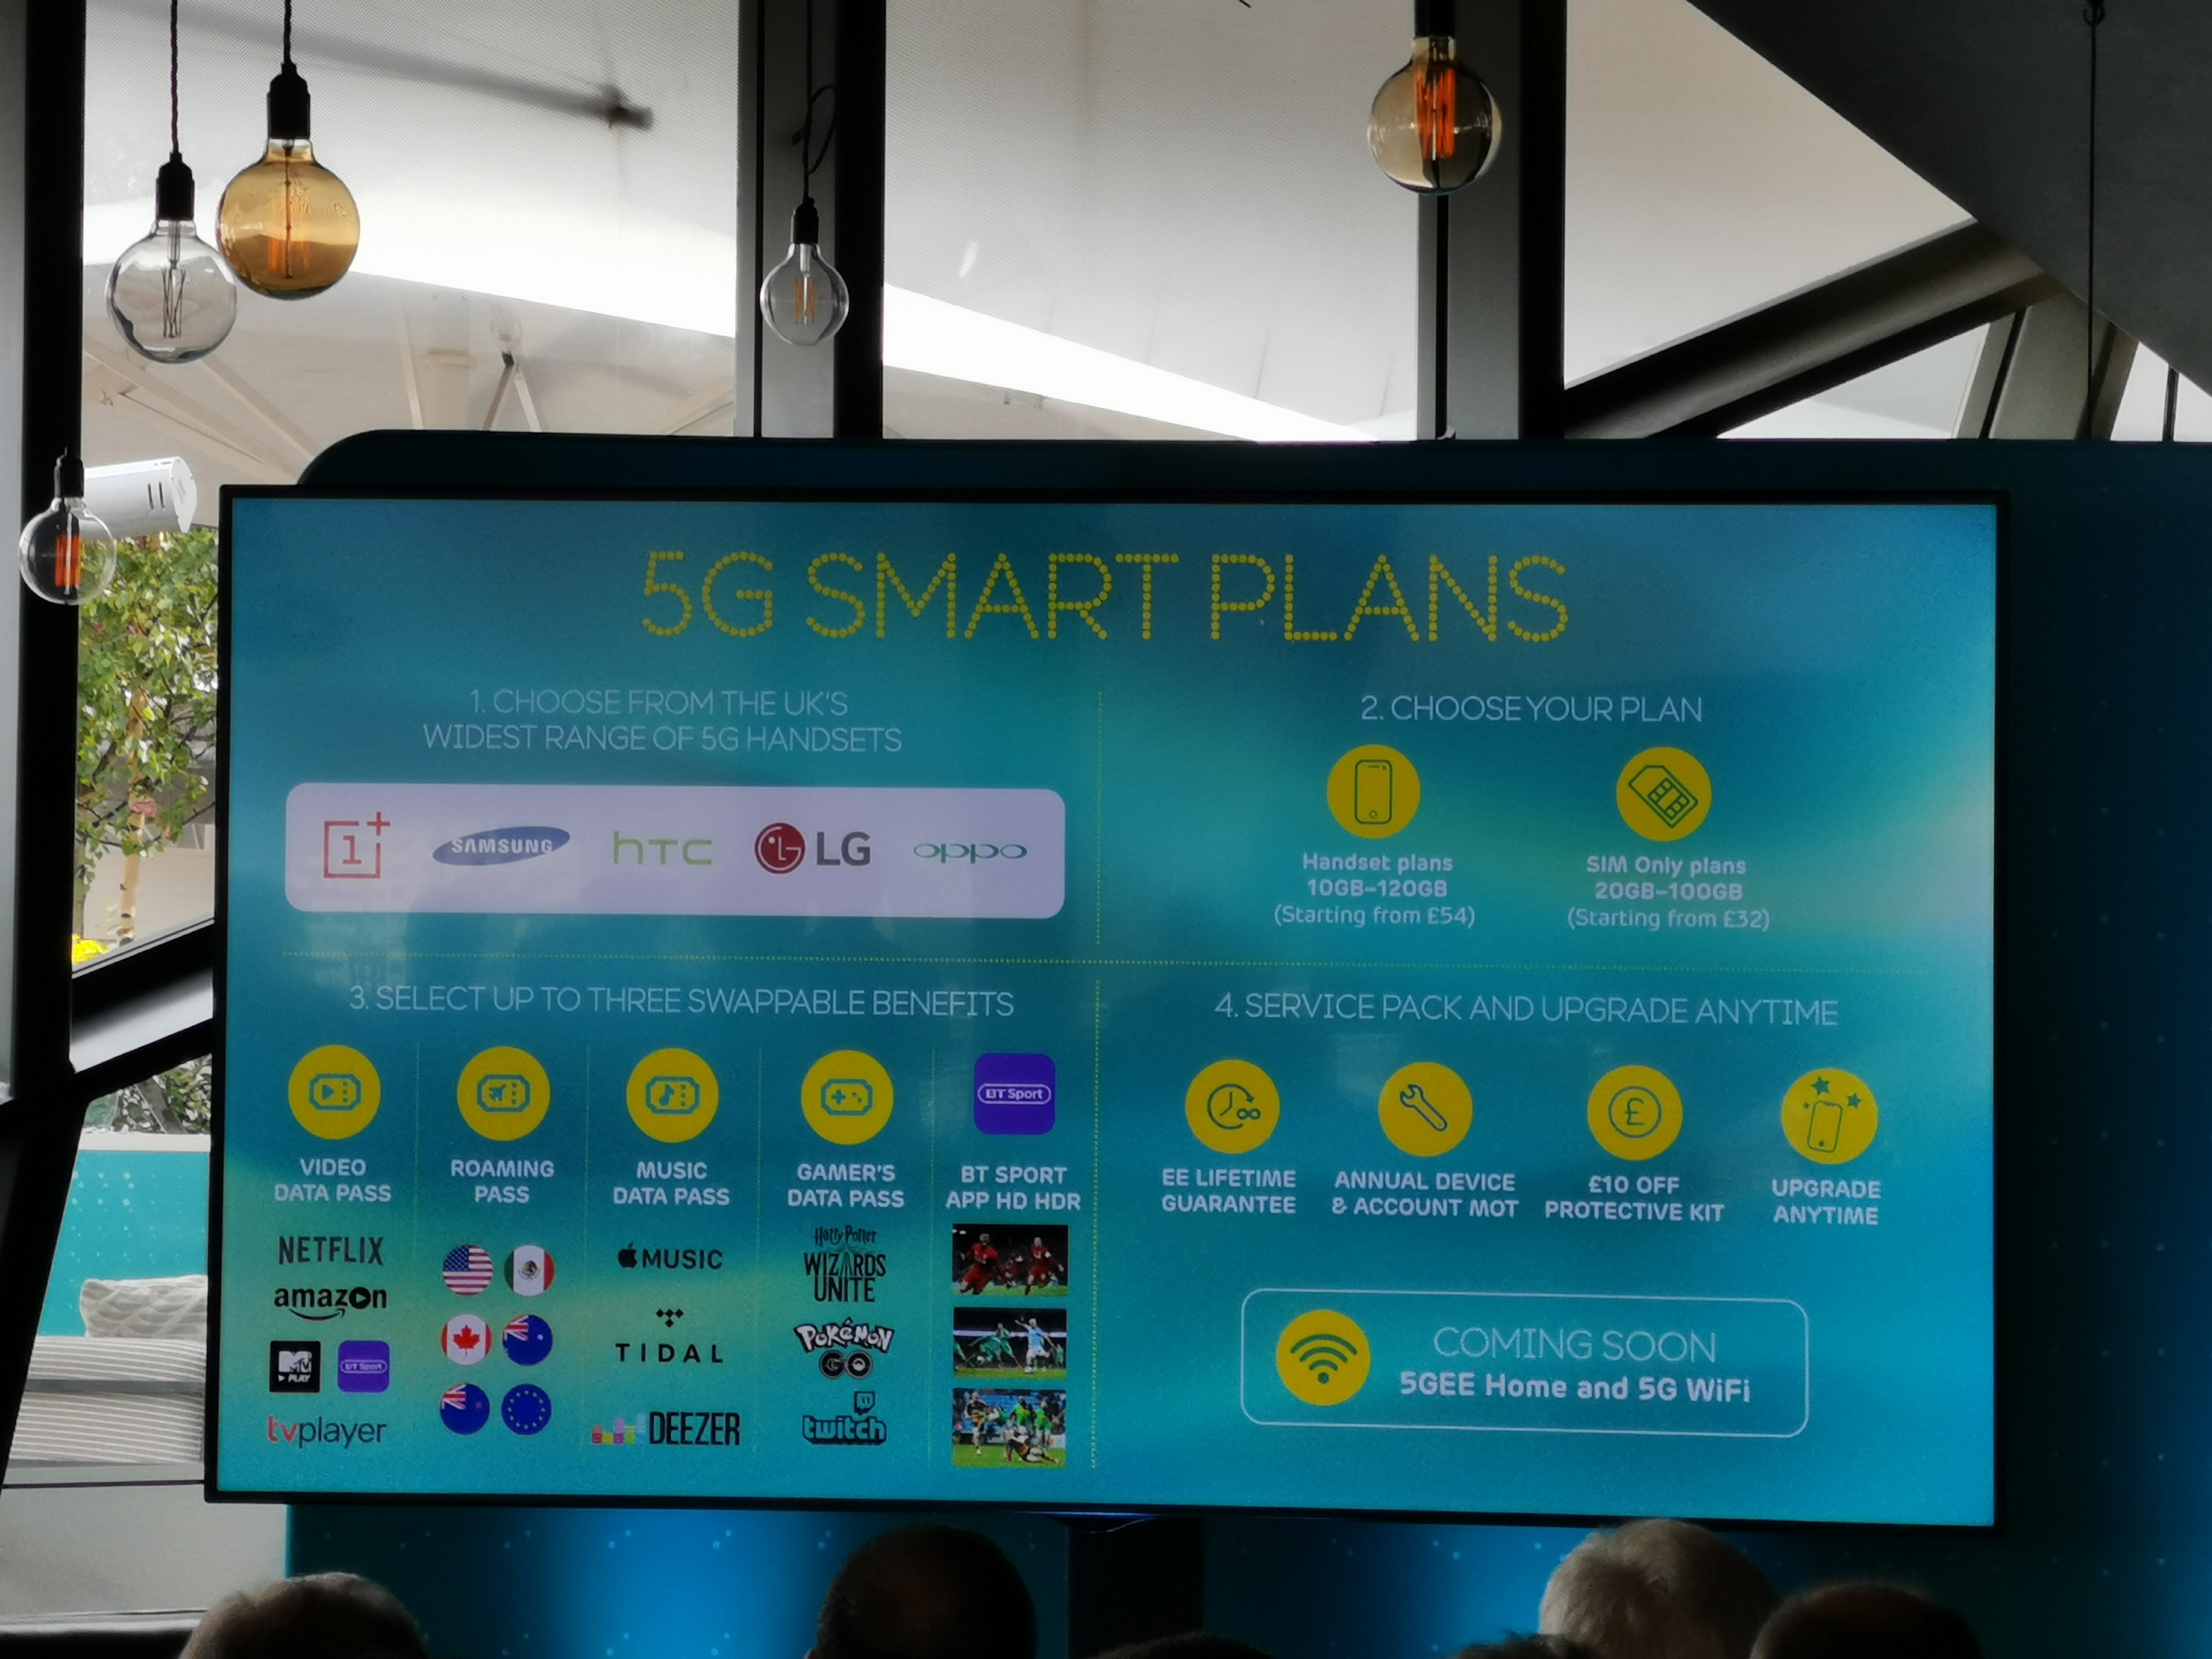 EE to launch 5G mobile network in Edinburgh on 30 May